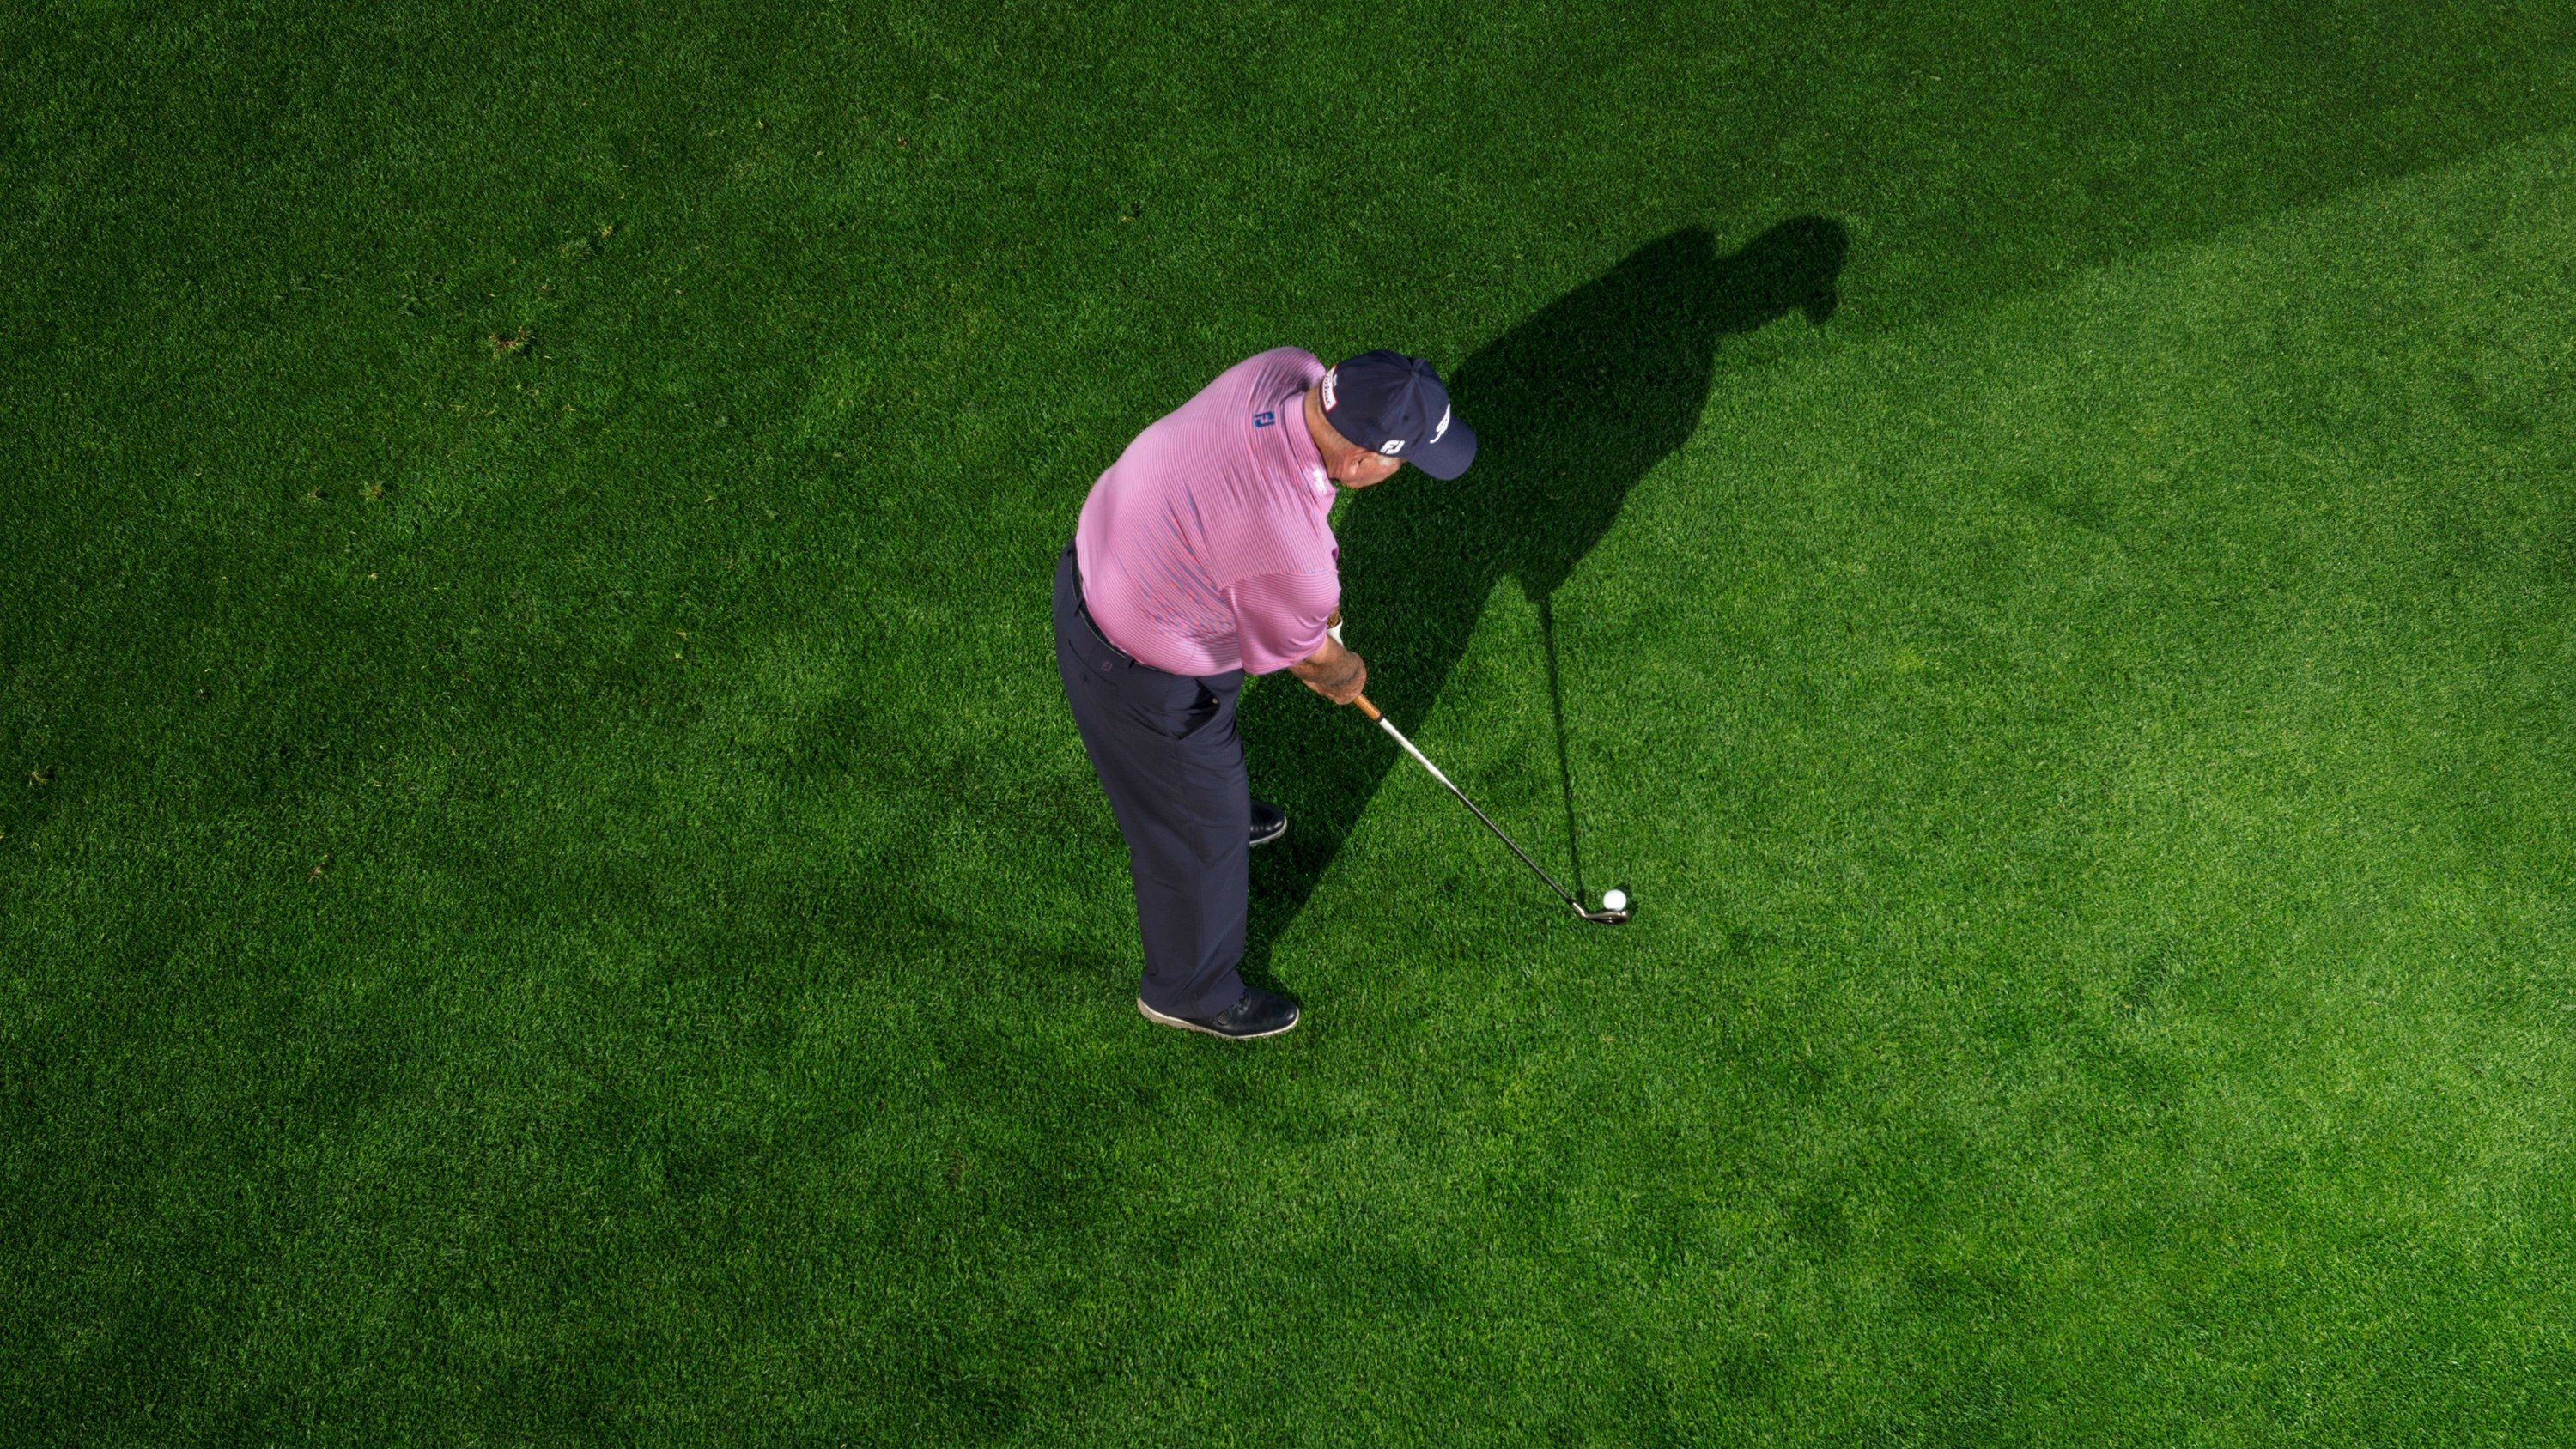 How To Make The Ball Curve Jack Nicklaus Simple Way Golf Driver Tips